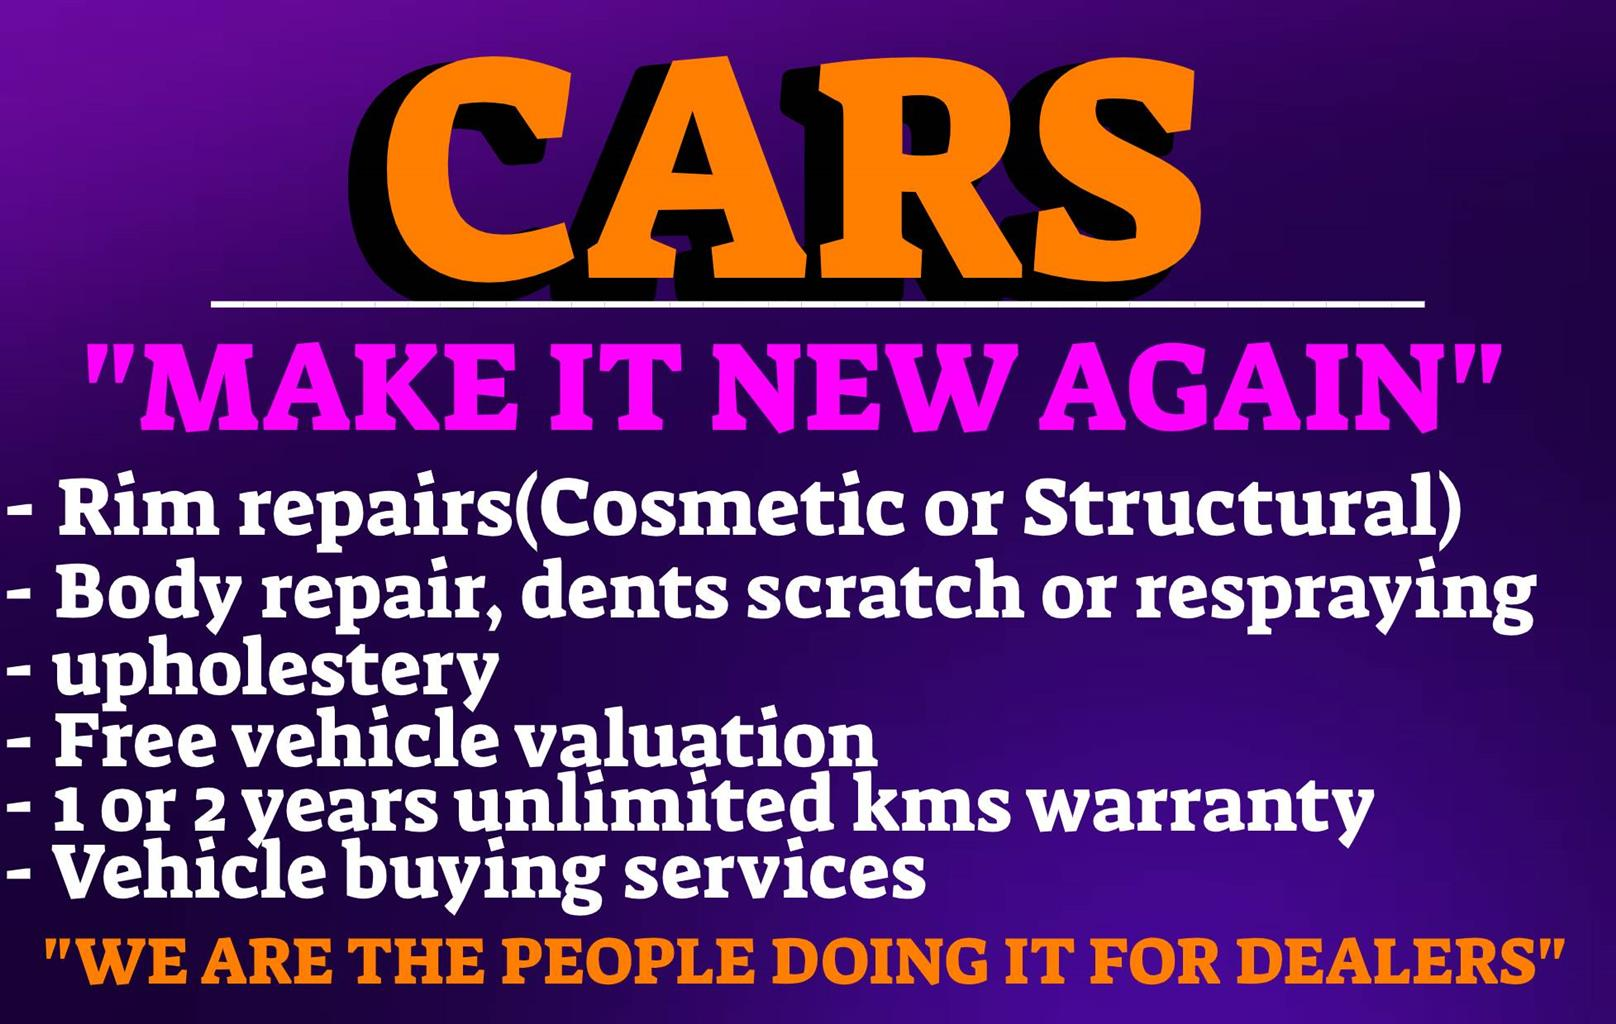 Making your car new again